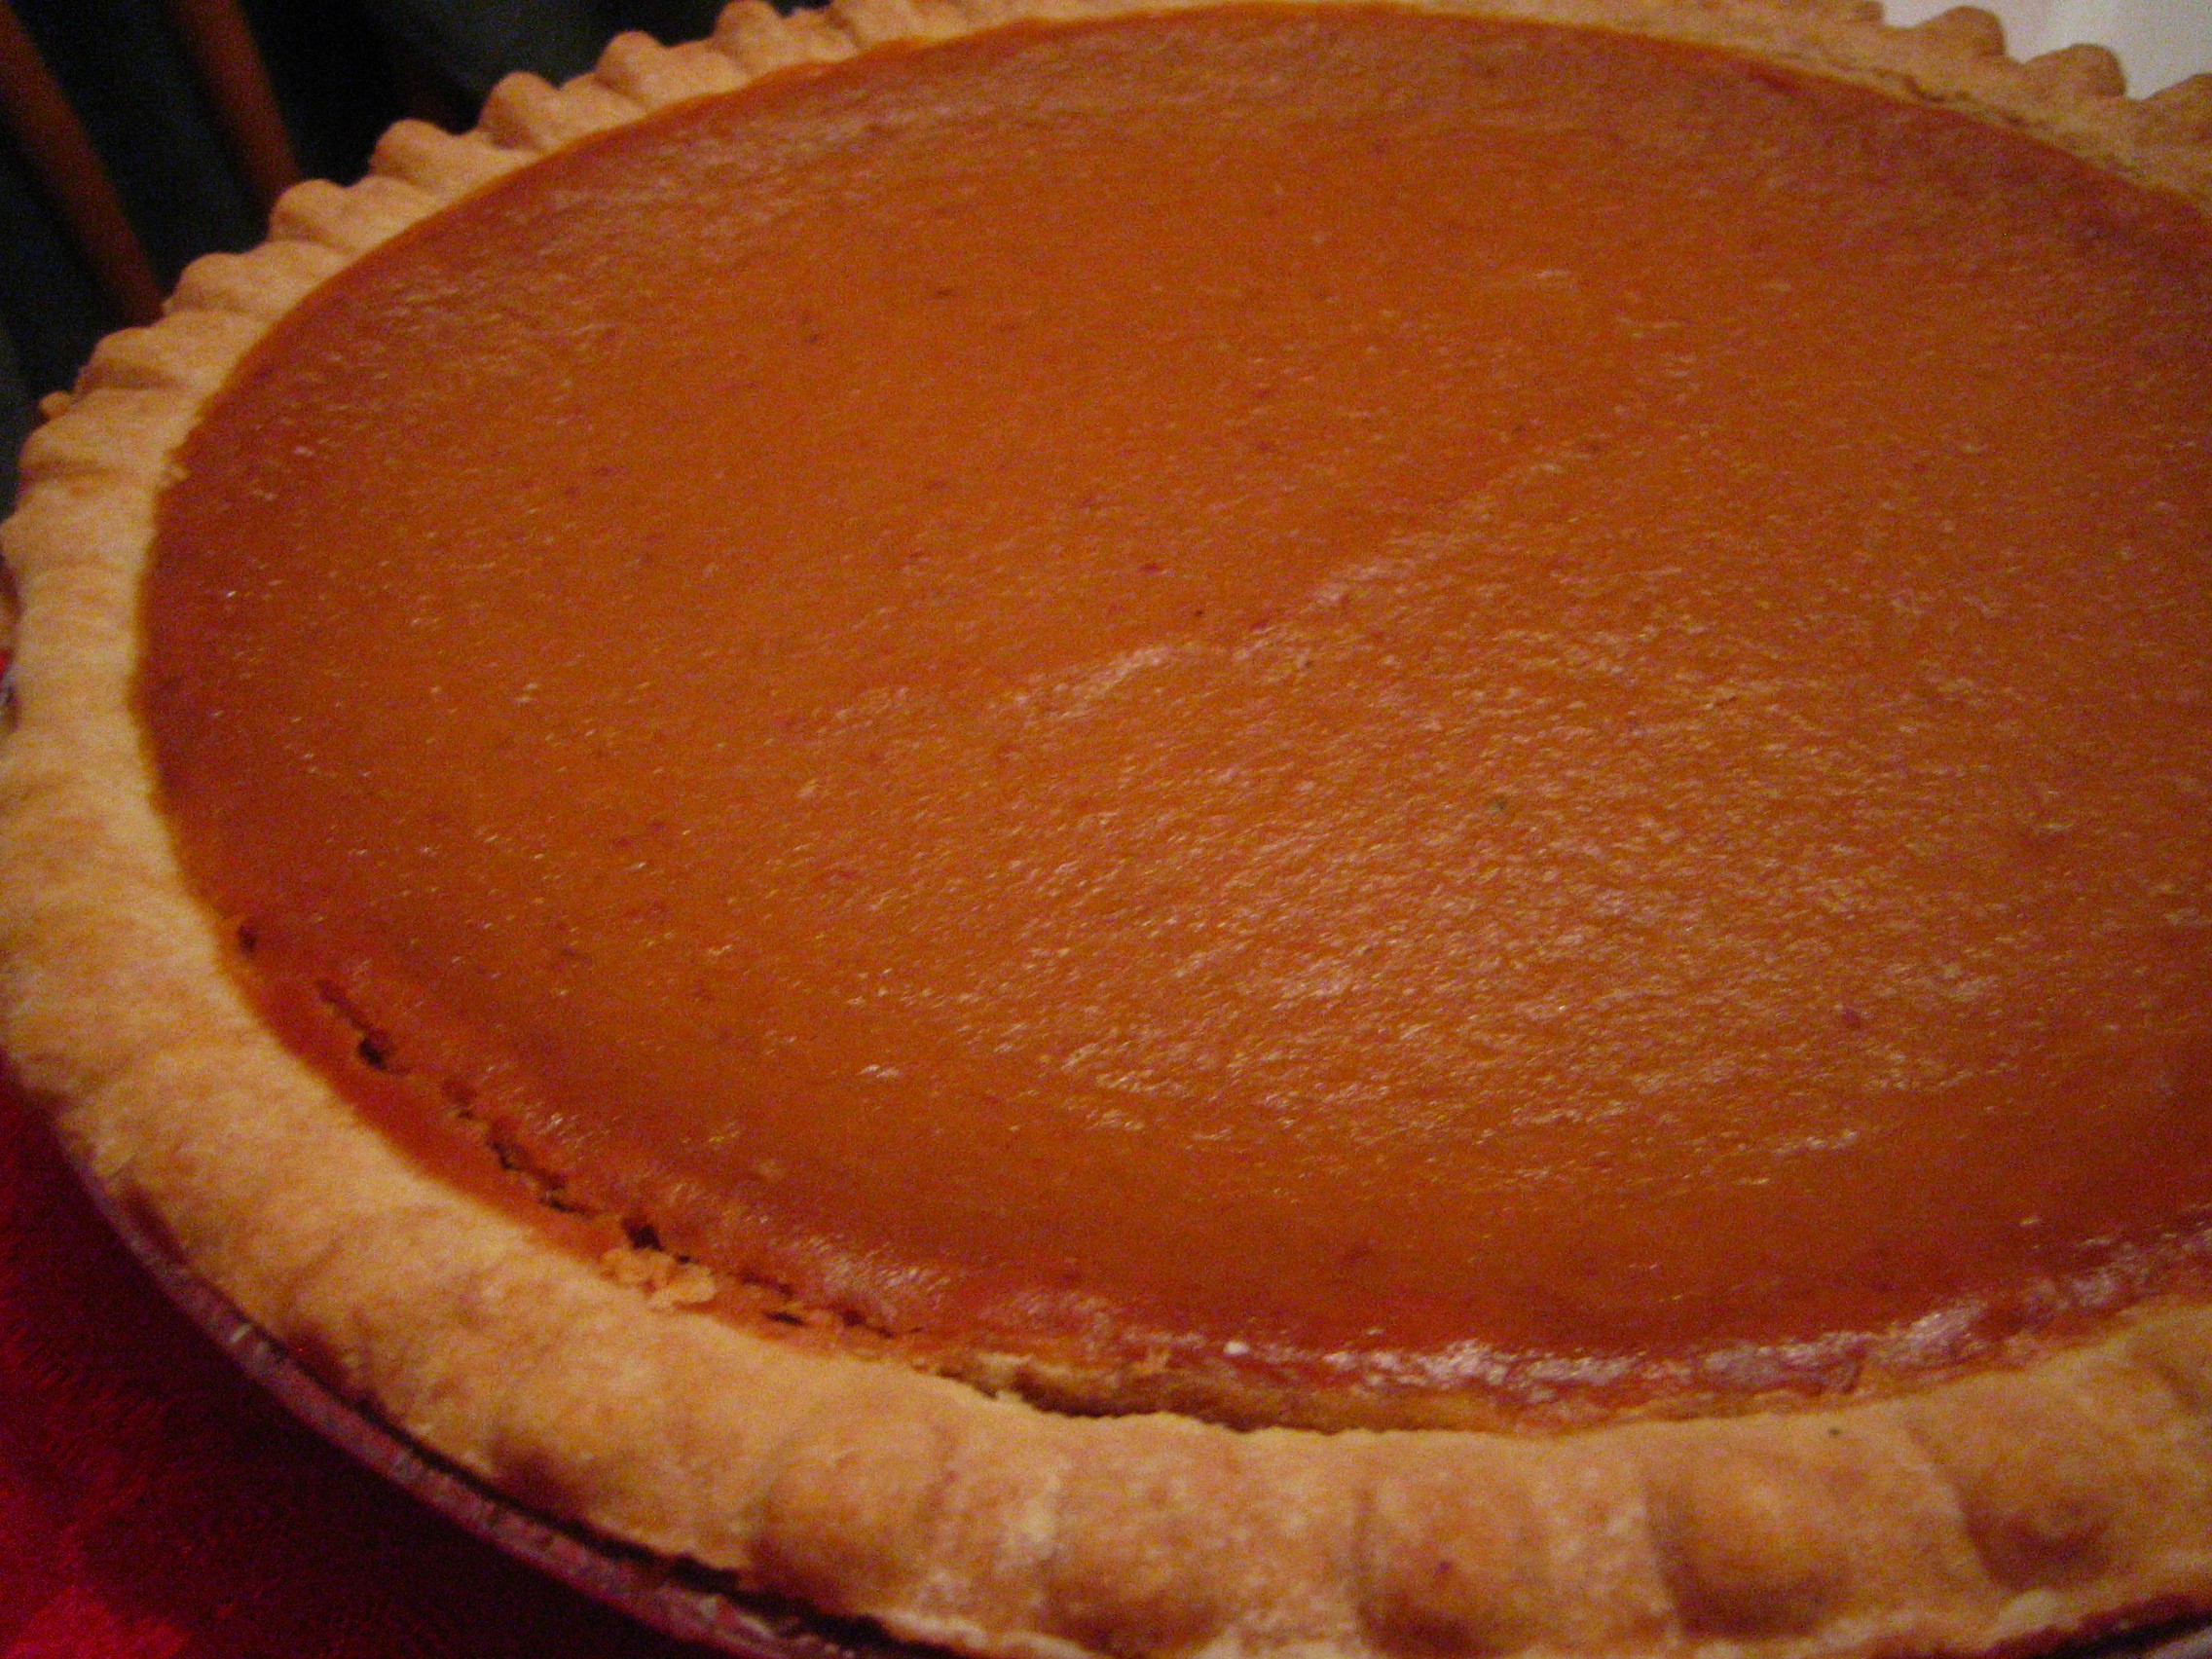 Pumpkin_pie_with_crust_detail